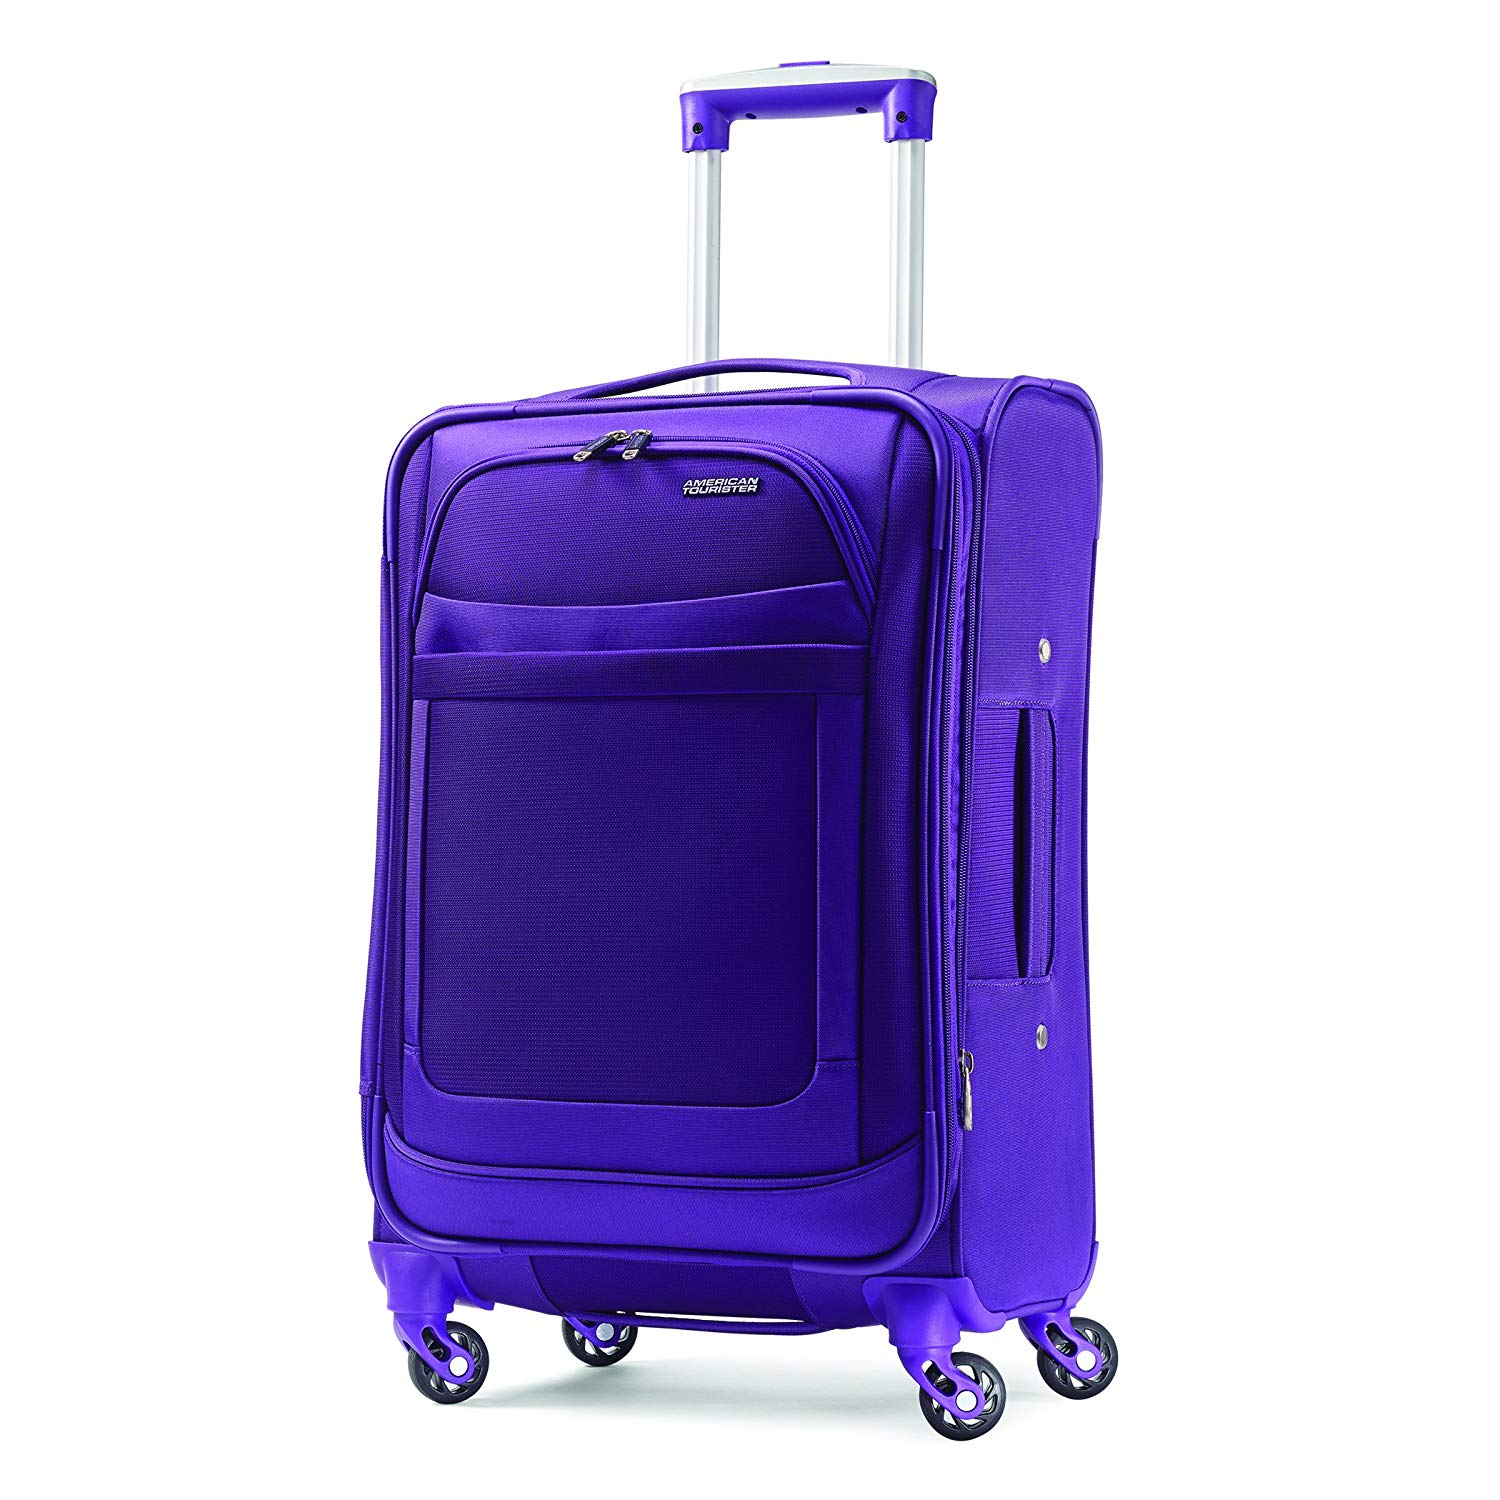 American Tourister Ilite Max Softside Spinner 29 Inch